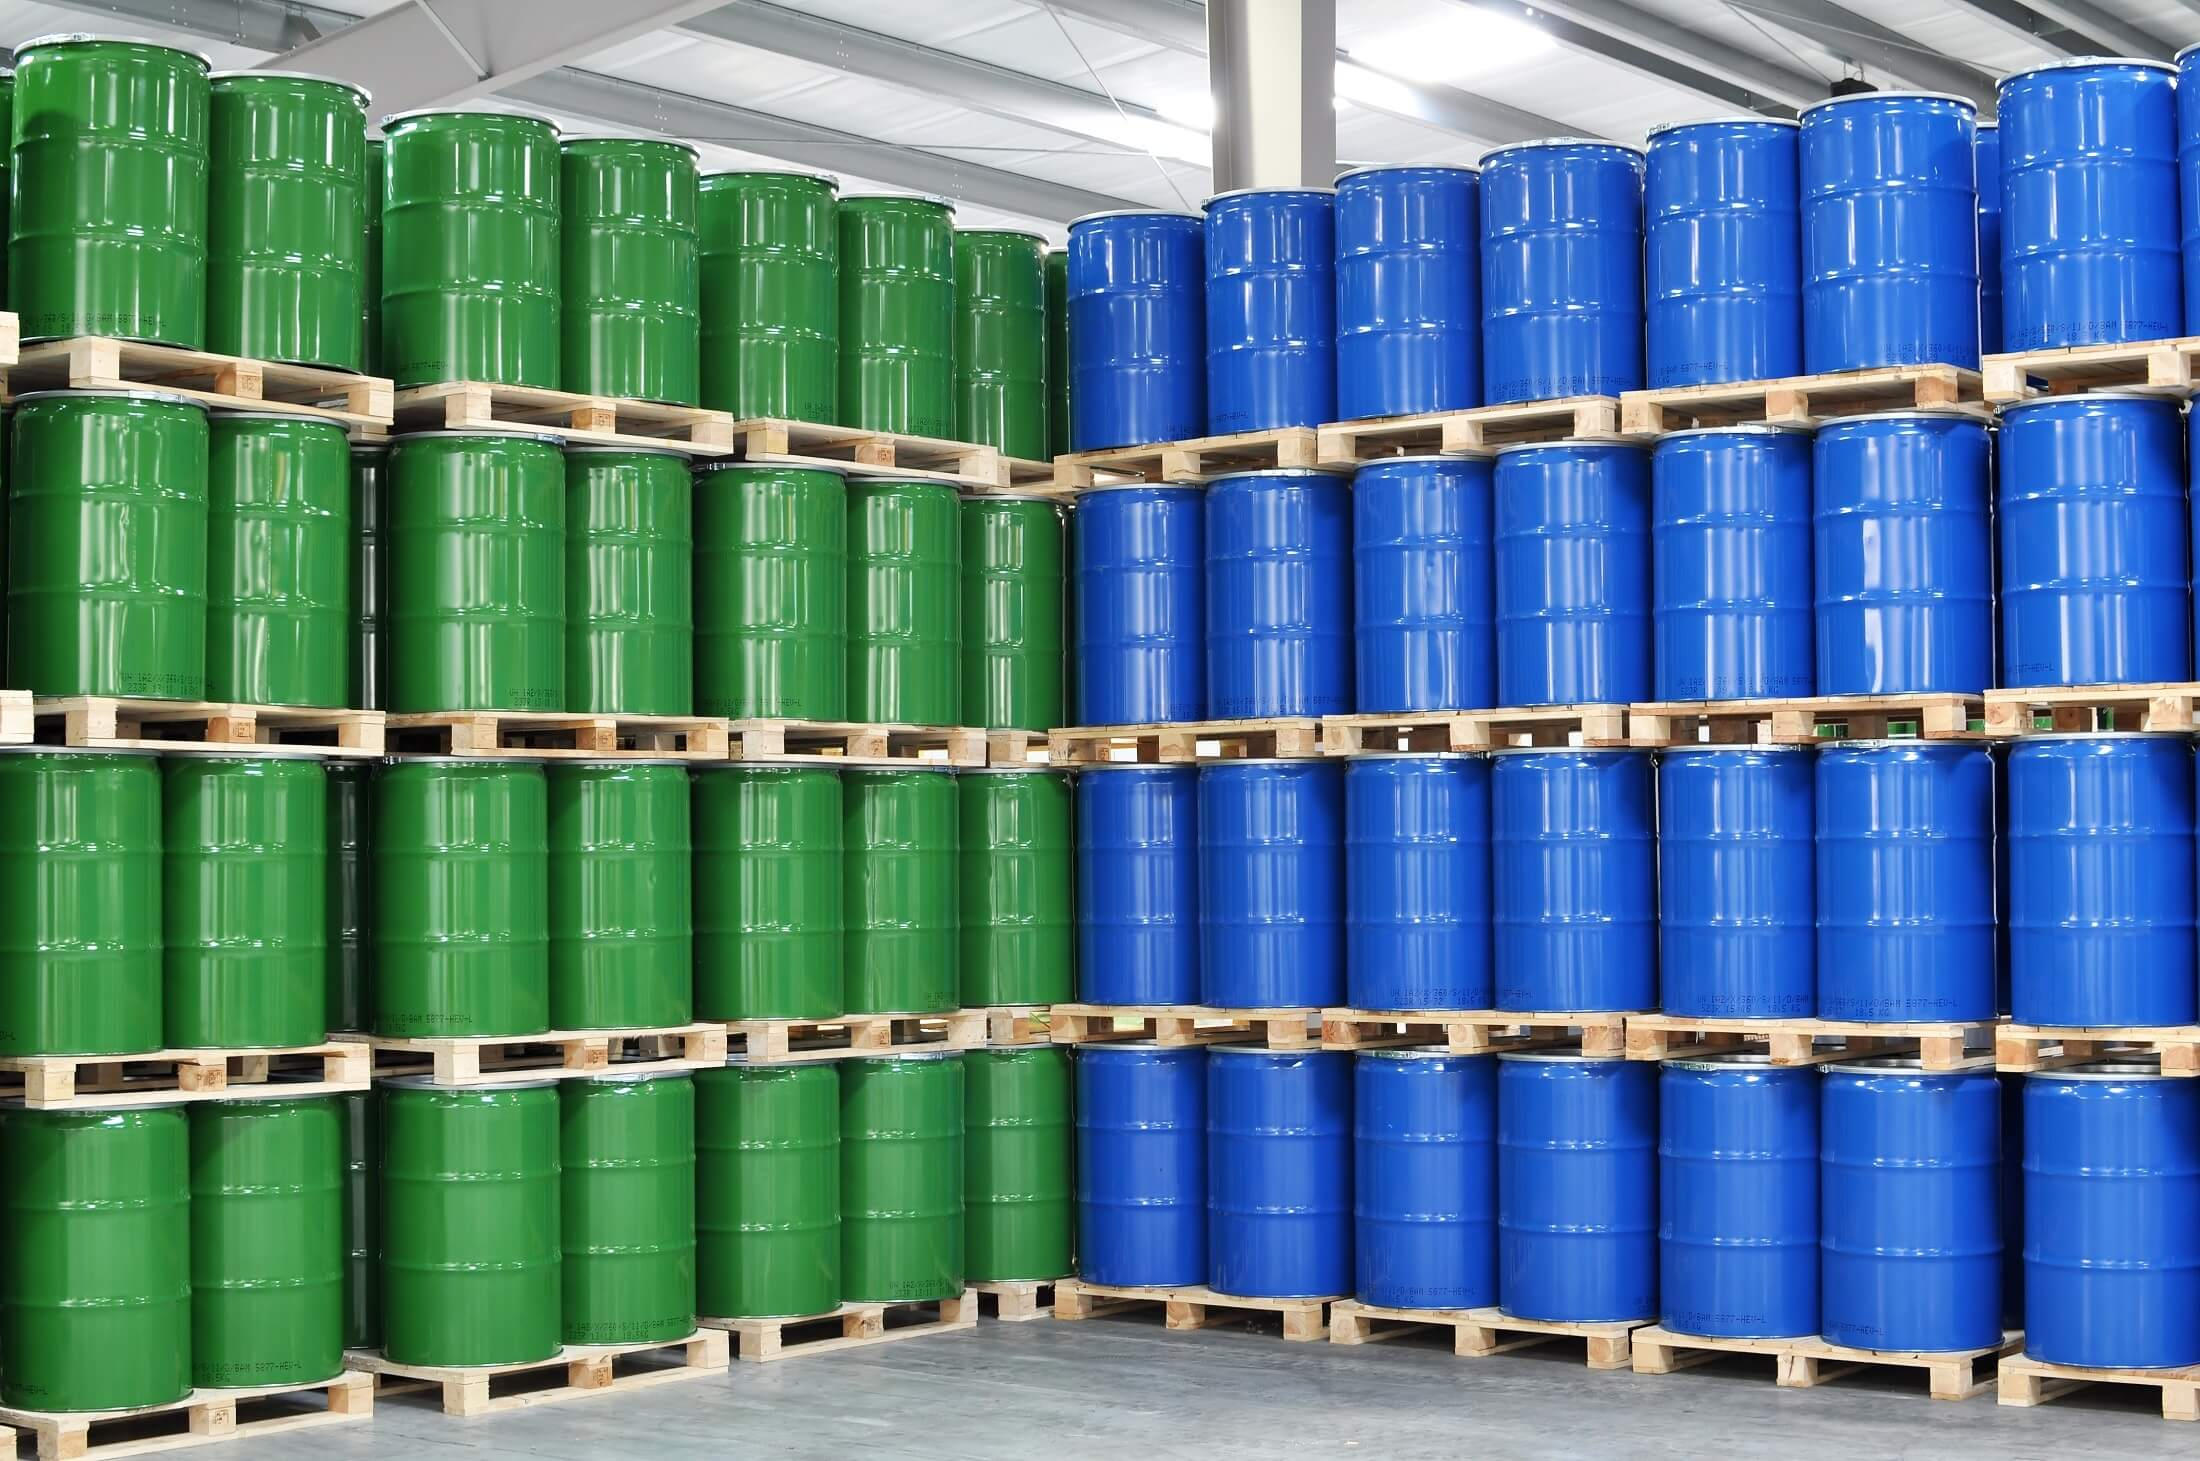 How to select the right hazardous chemical storage solution